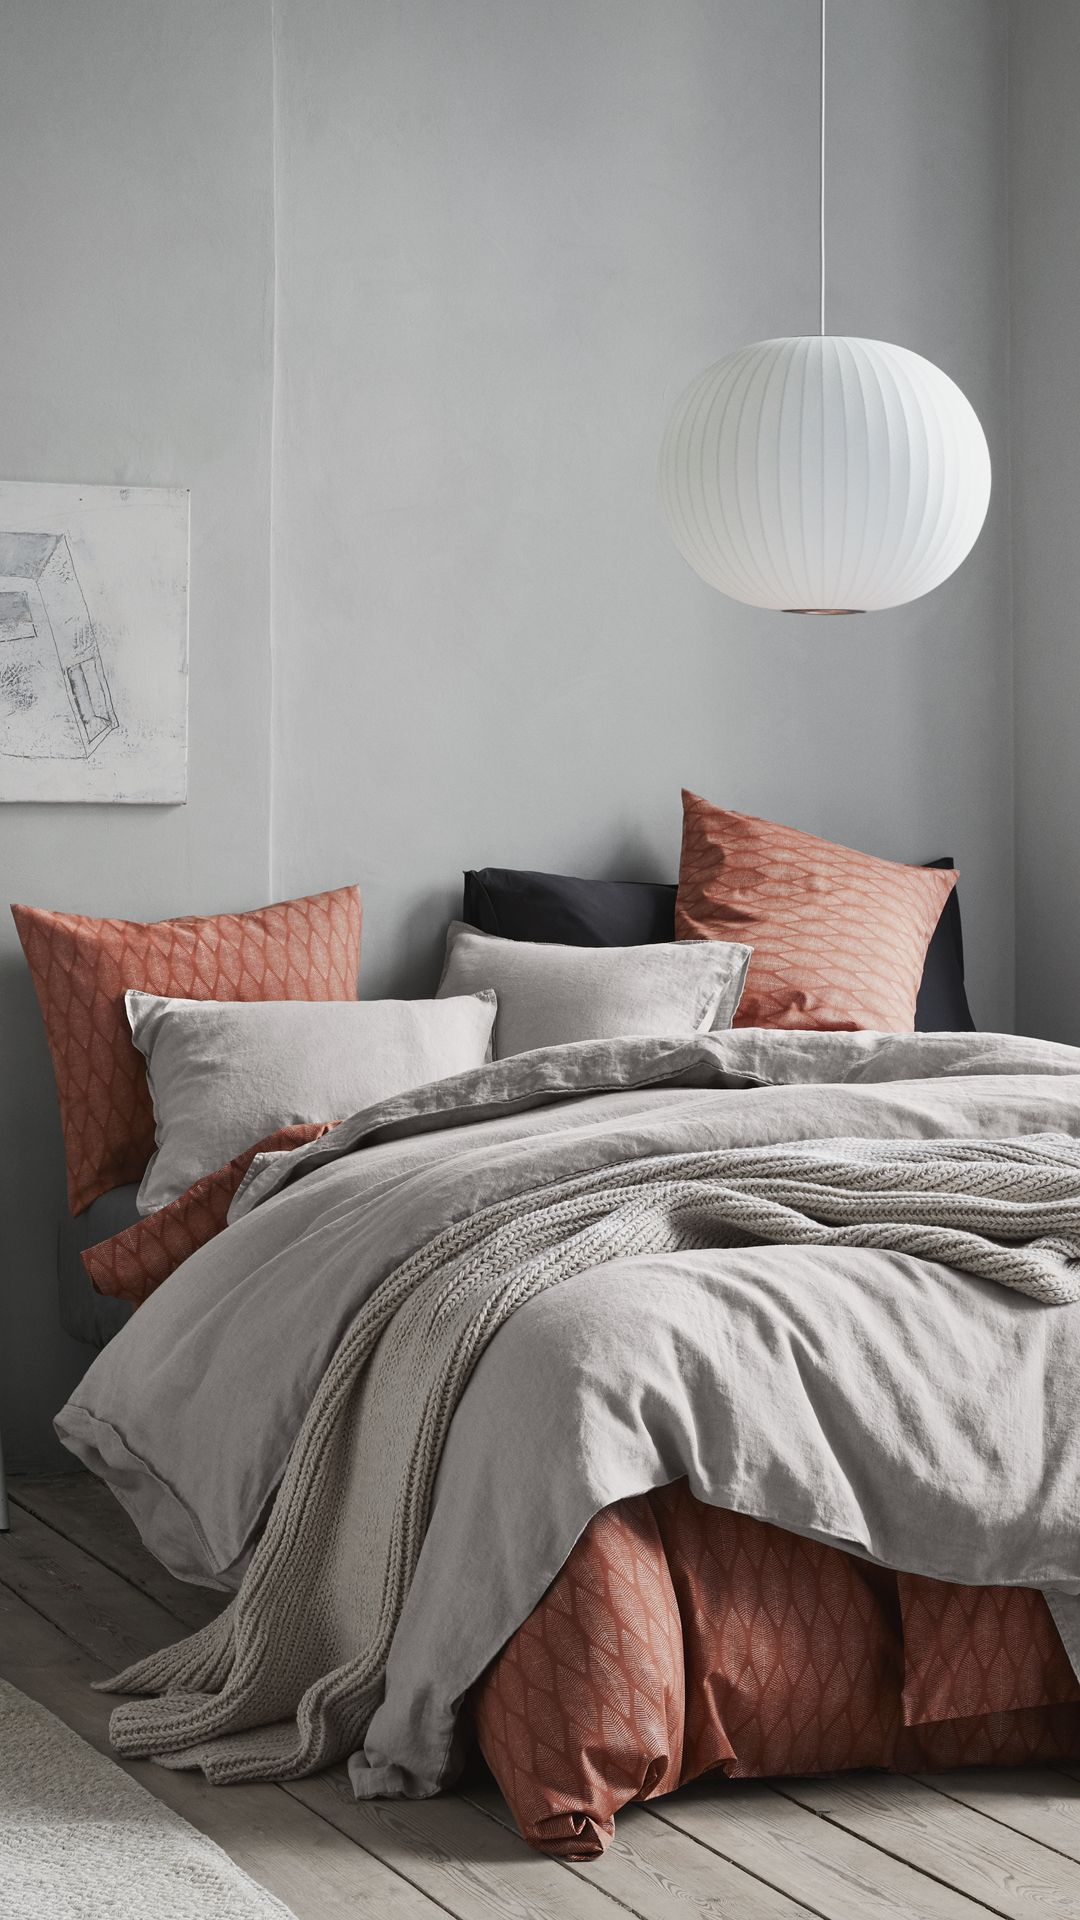 Update with fresh bed linen in an array of new colours and subtle patterns.